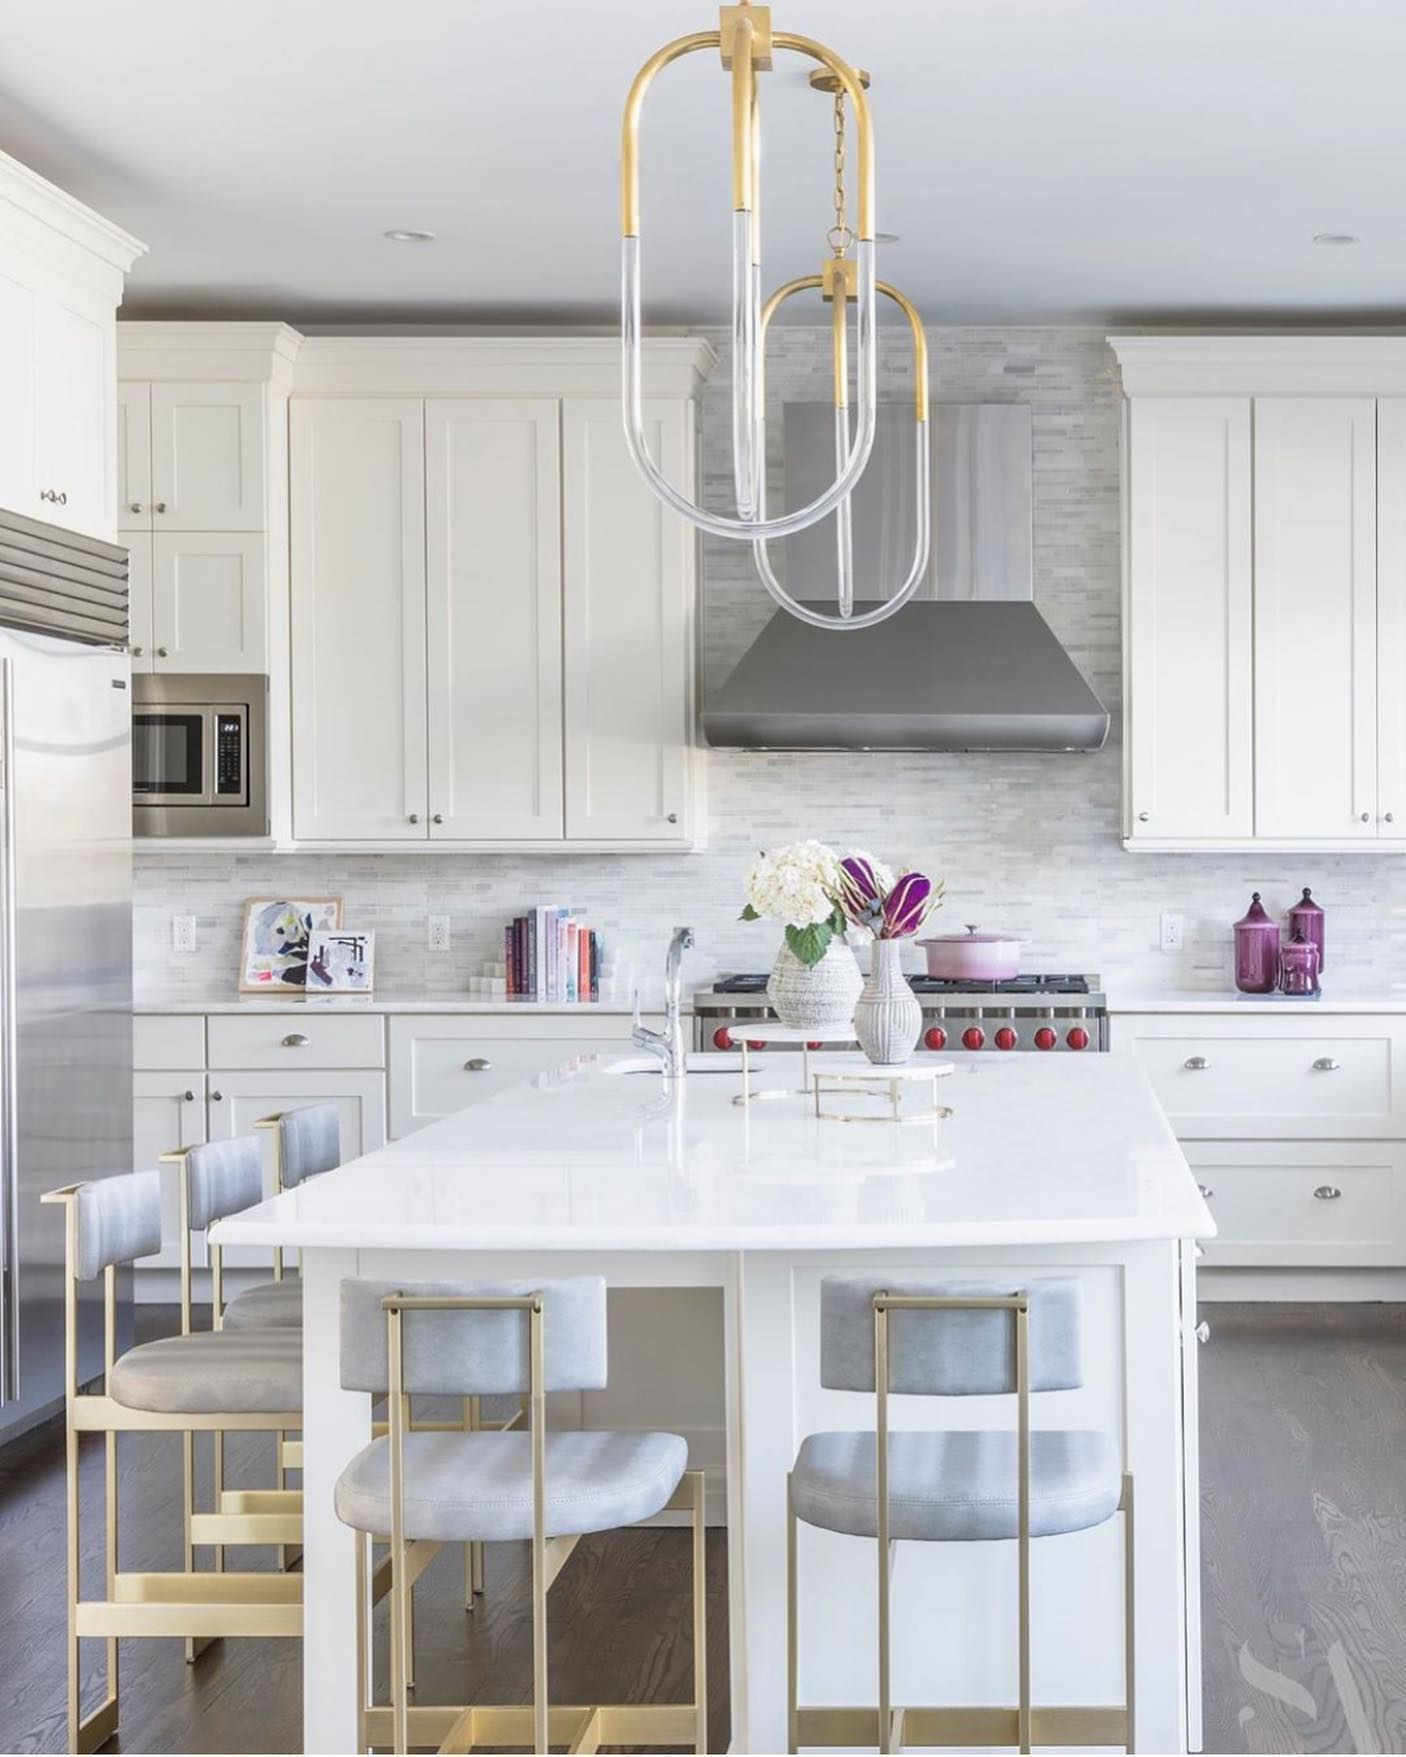 White Kitchen With Brass Accents In 2020 Contemporary Kitchen Kitchen Remodel White Kitchen